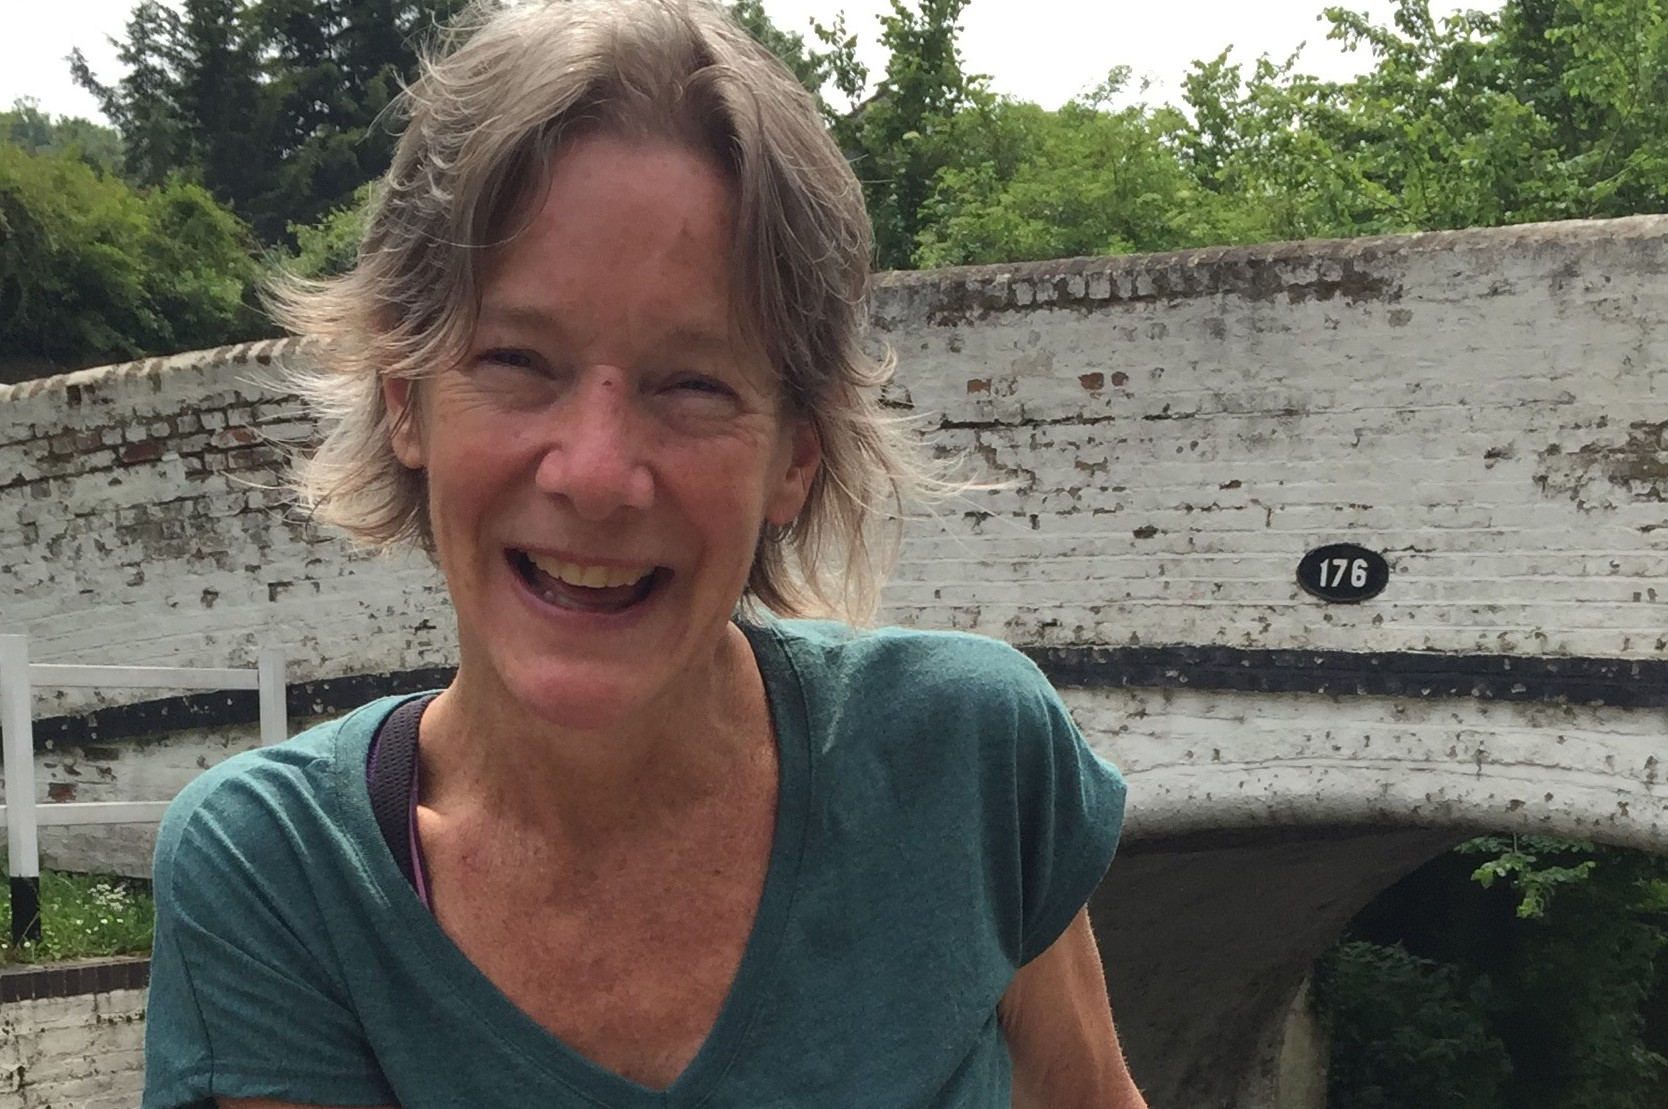 Profile image of Cathy Dean, CEO of Save the Rhino International